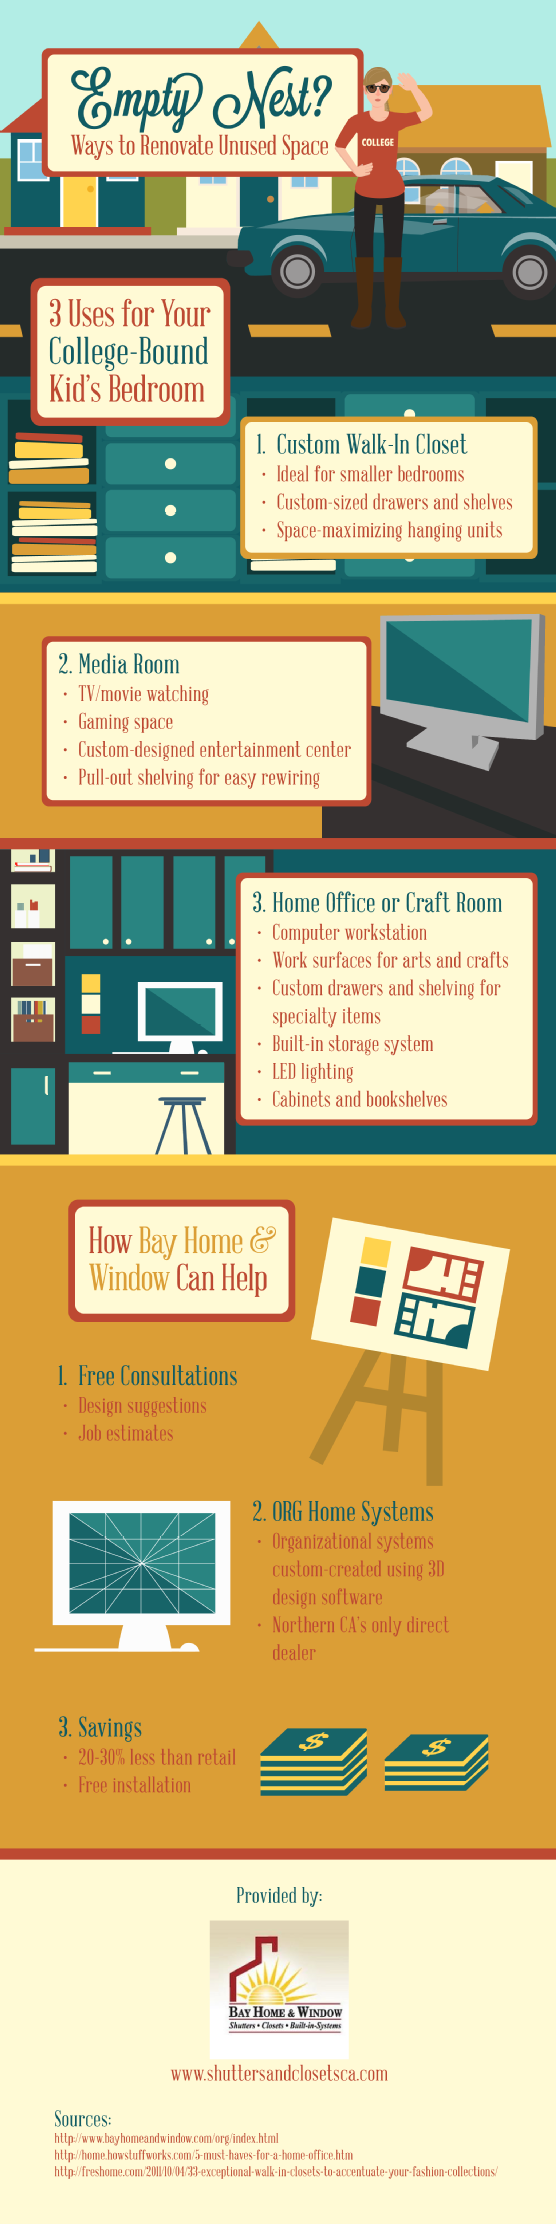 Empty Nest? Ways To Renovate Unused Space #Infographic